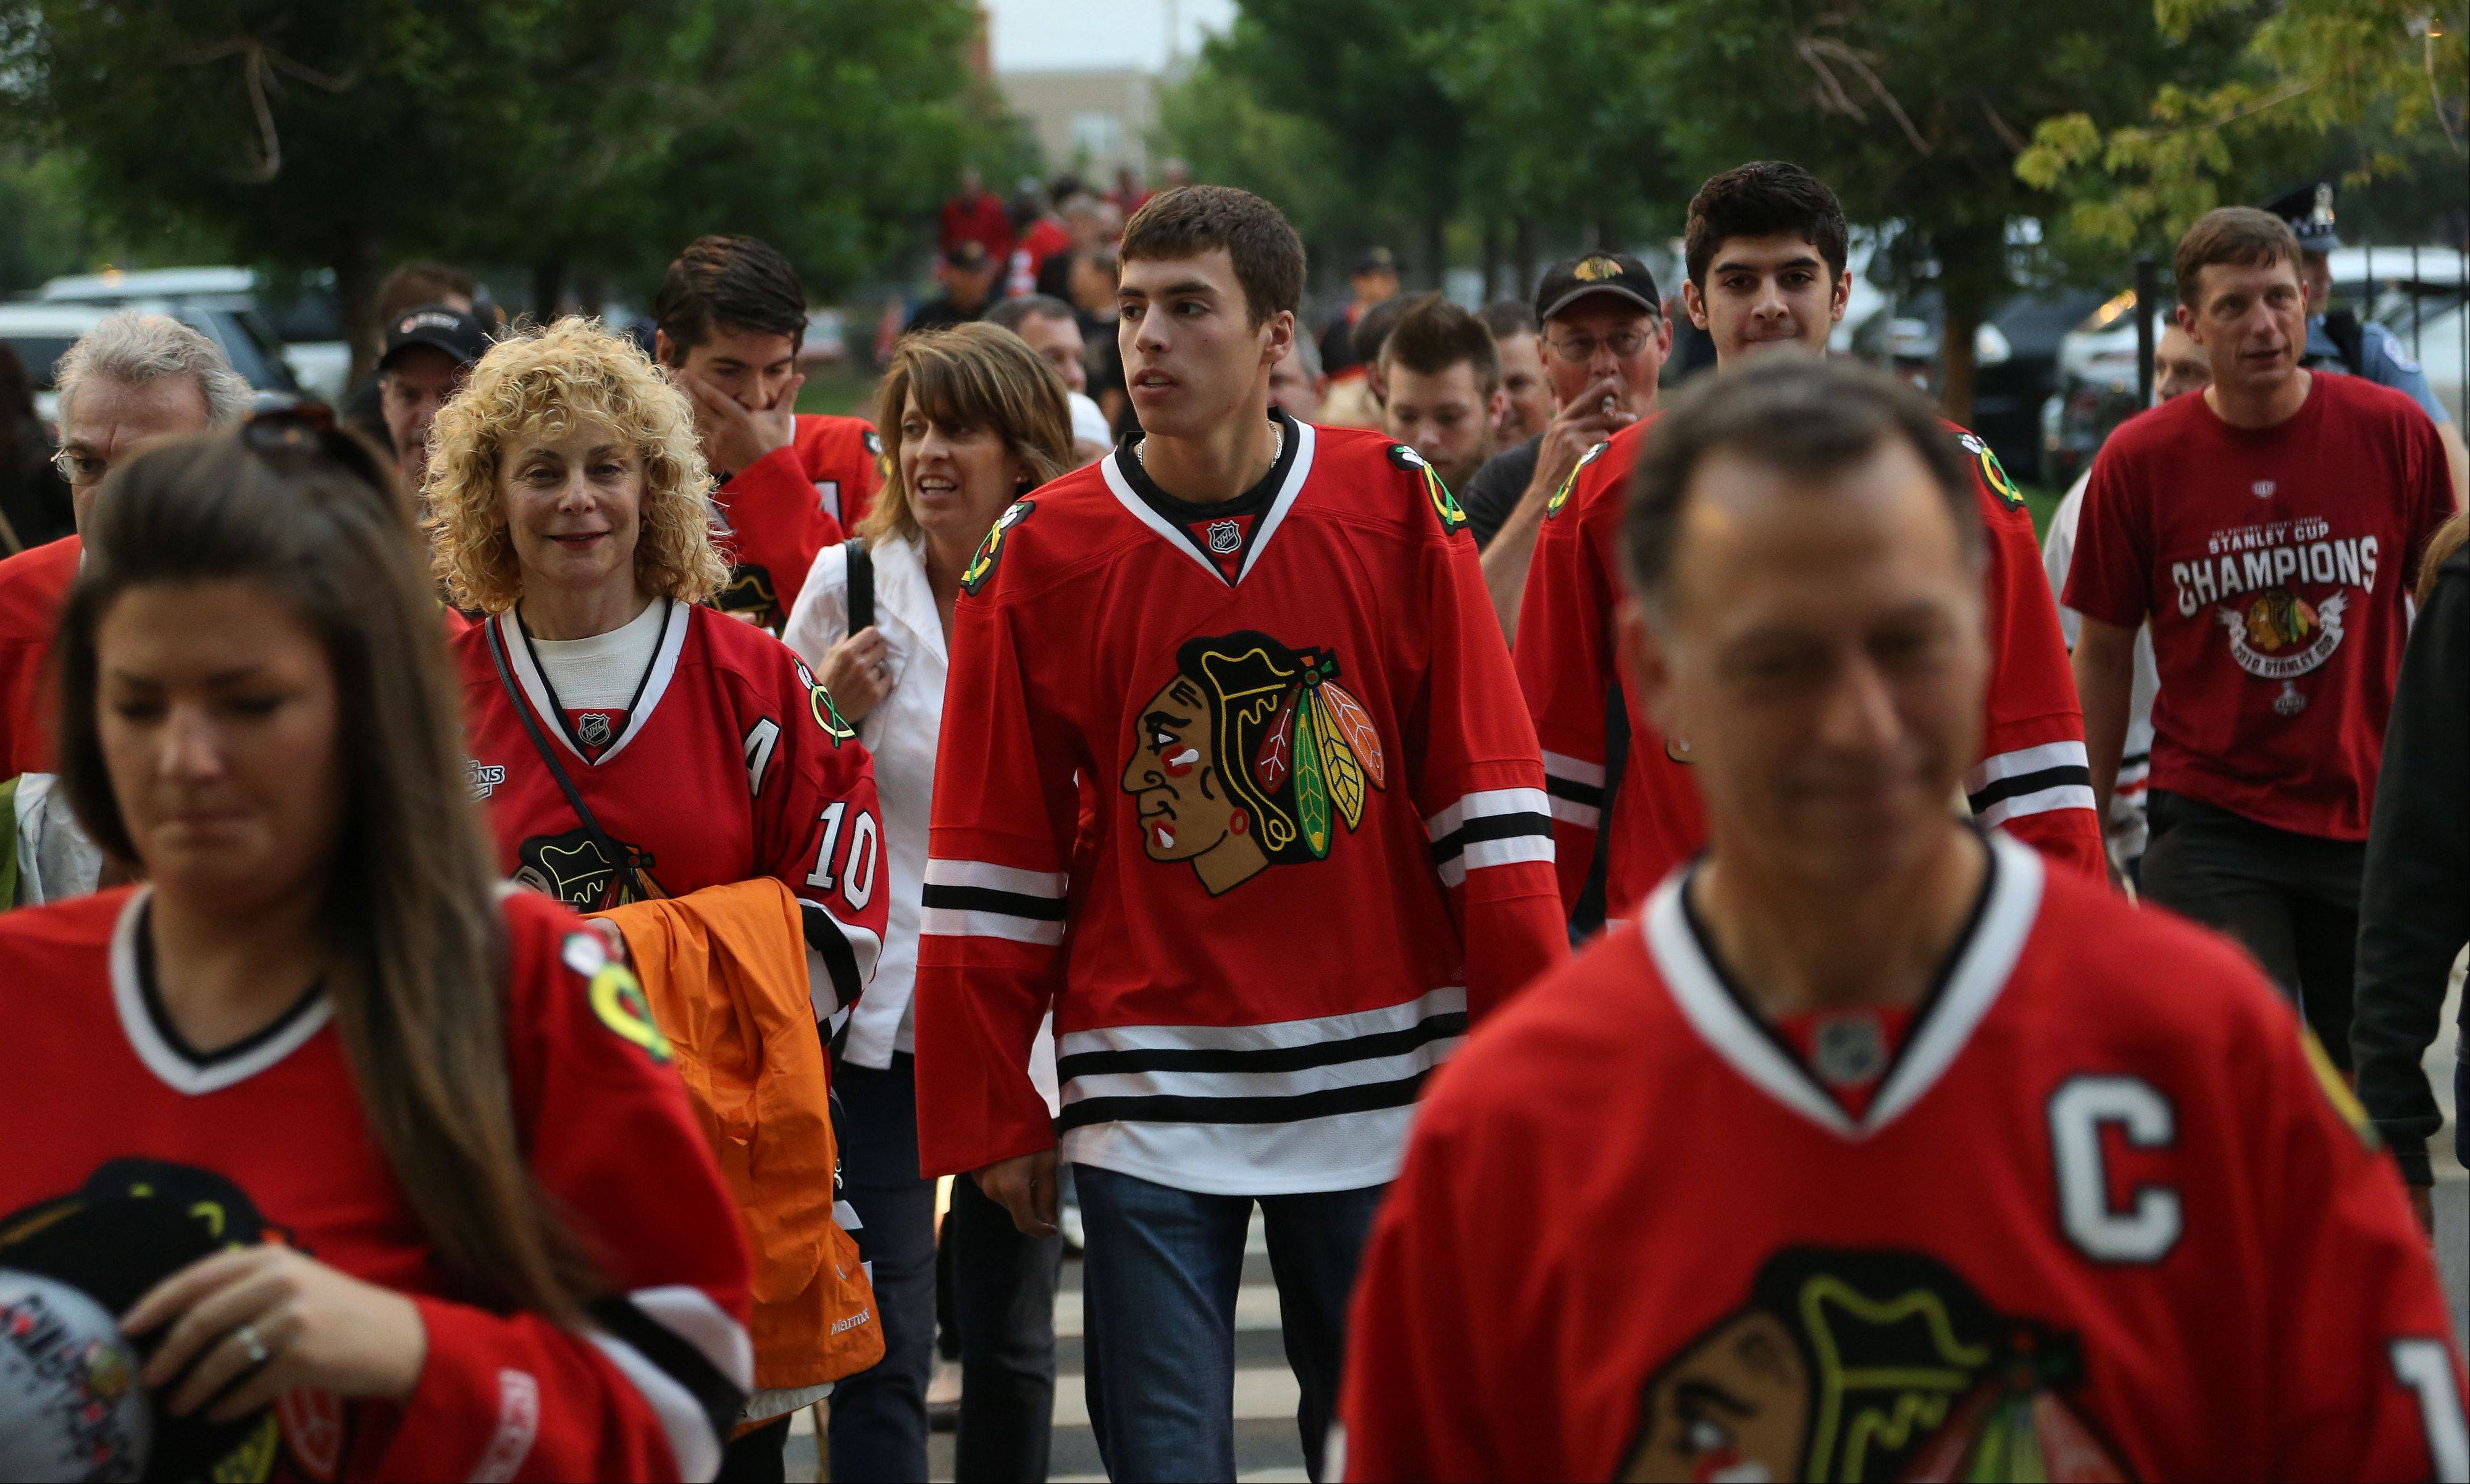 Blackhawks fans are all red as they make their way into the United Center.